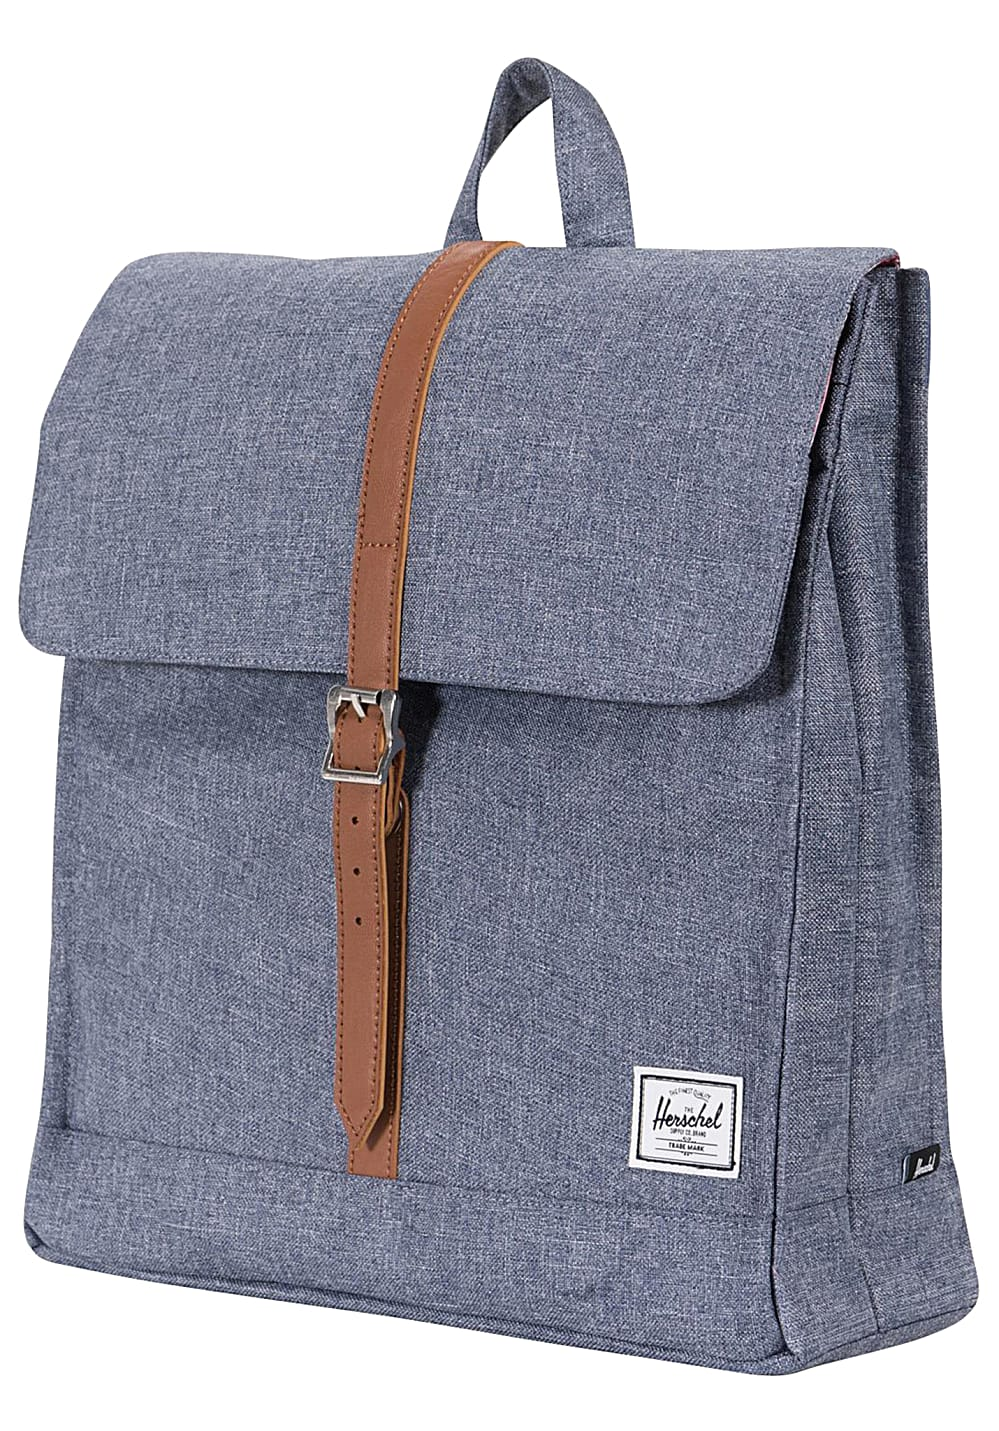 2033639d628 Next. This product is currently out of stock. Herschel SUPPLY CO. City Mid  14L - Backpack